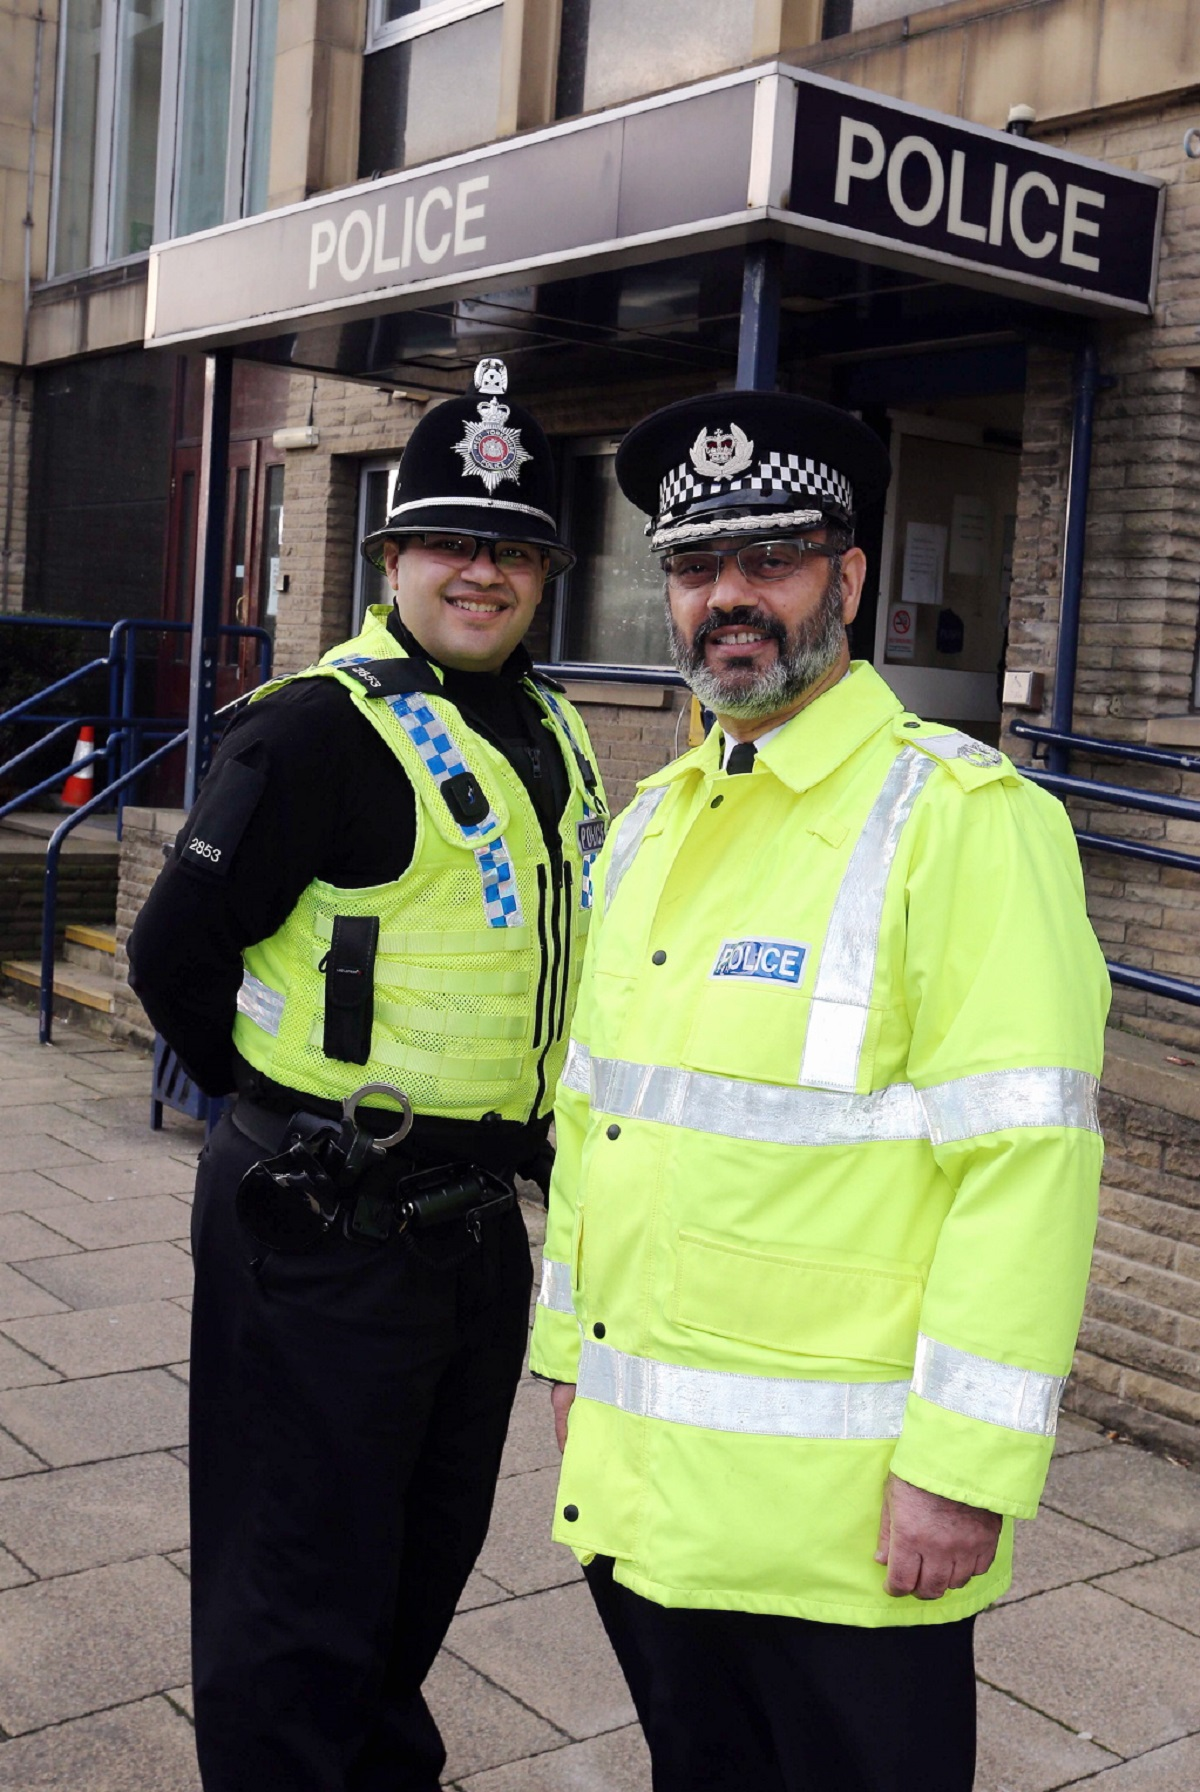 Retiring Deputy Chief Constable of West Yorkshire Jawaid Akhtar goes on patrol with his son PC Mohsin Akhtar